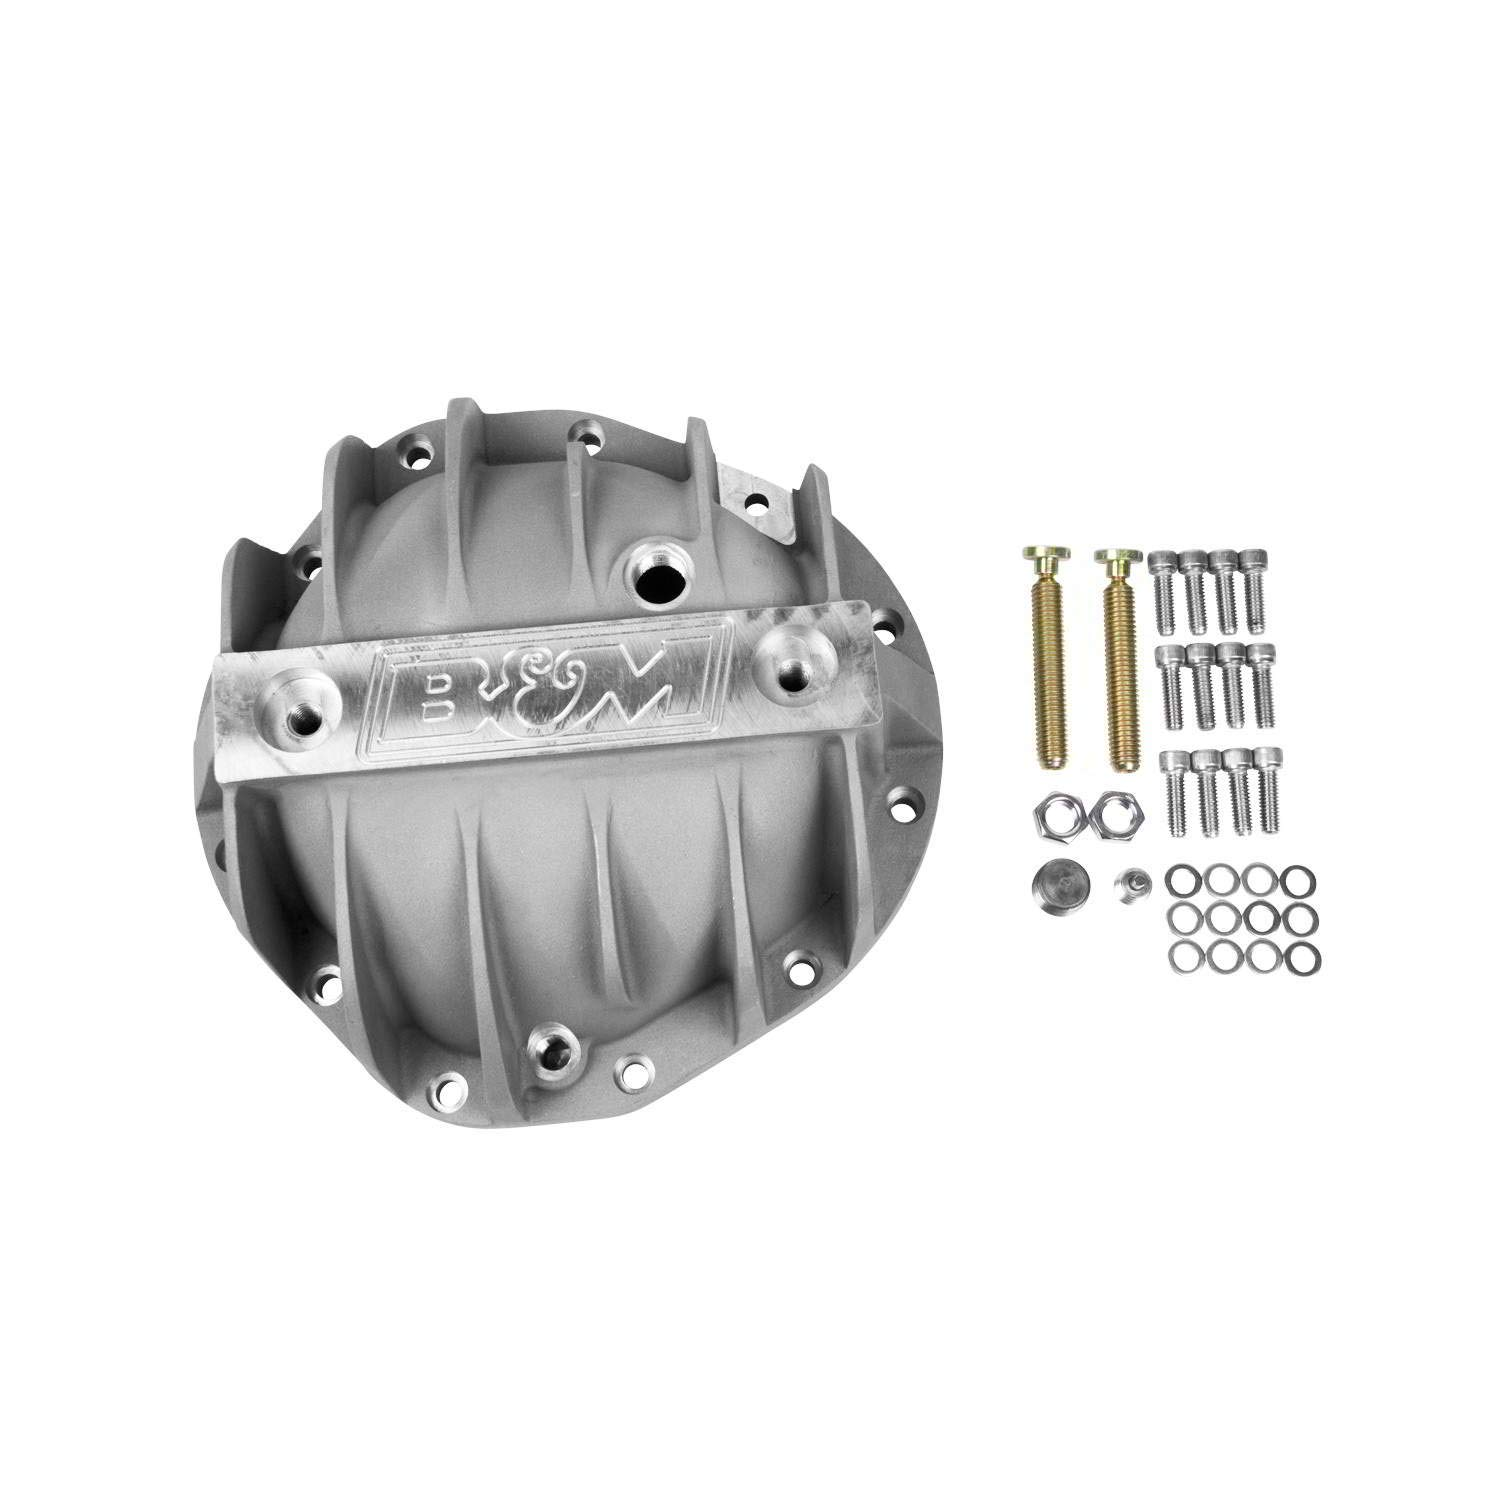 B/&M 70504 Cast Aluminum Rear End Differential Cover with 8.875 Bolt for Chevy Truck